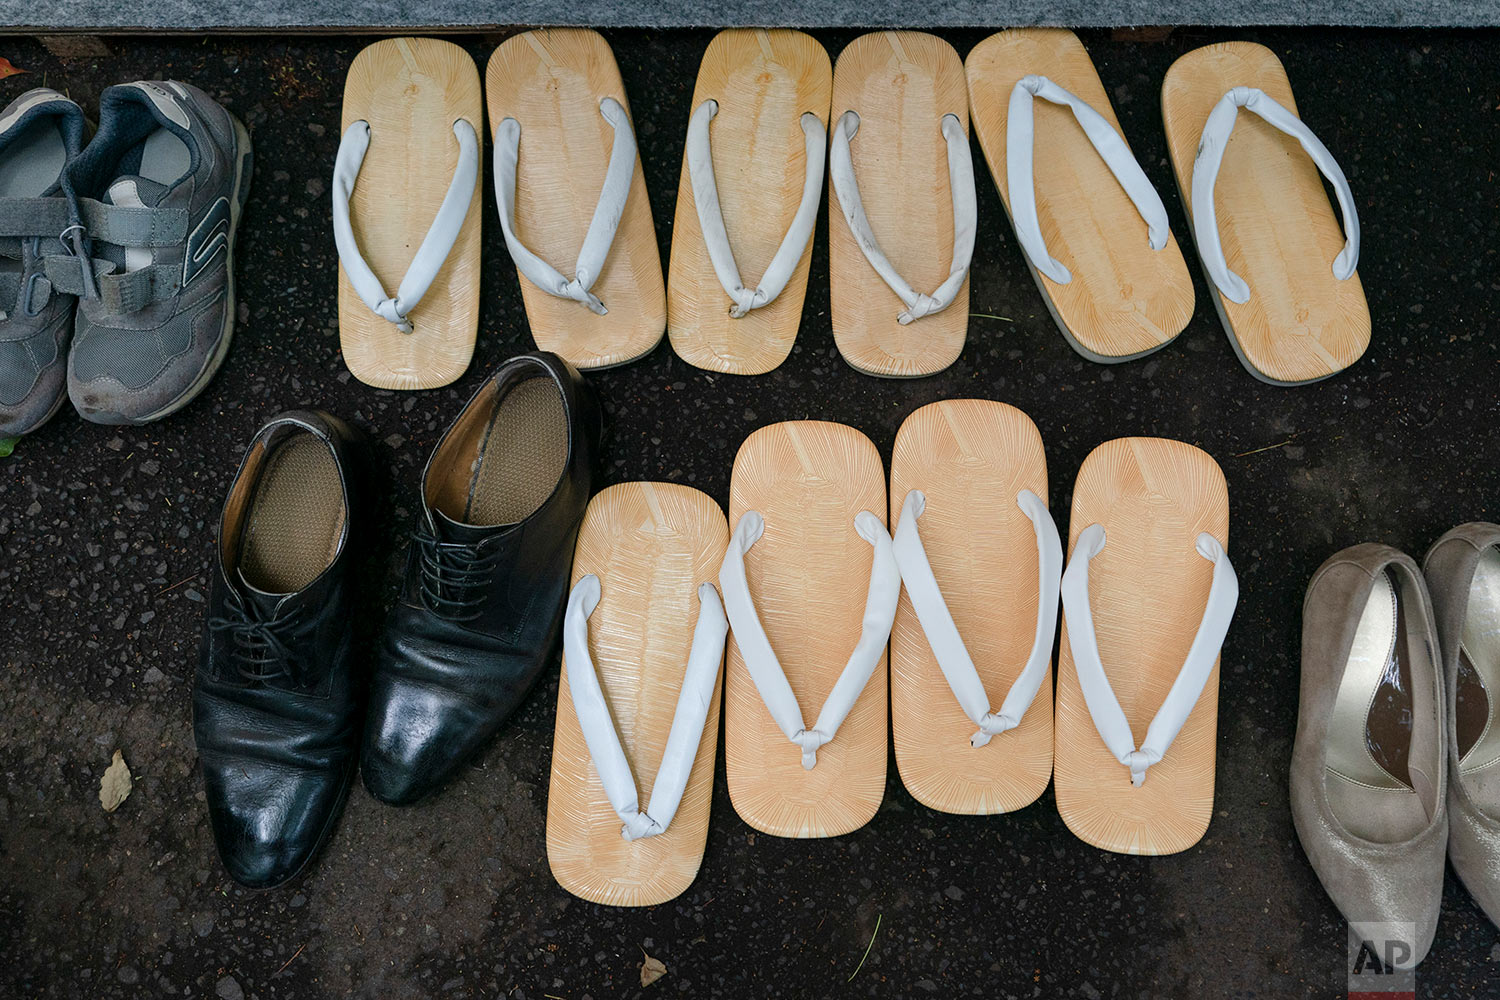 Traditional Japanese footwear called zori are seen next to sneakers and dress shoes during a kendo competition in Tokyo, June 8, 2019. (AP Photo/Jae C. Hong)